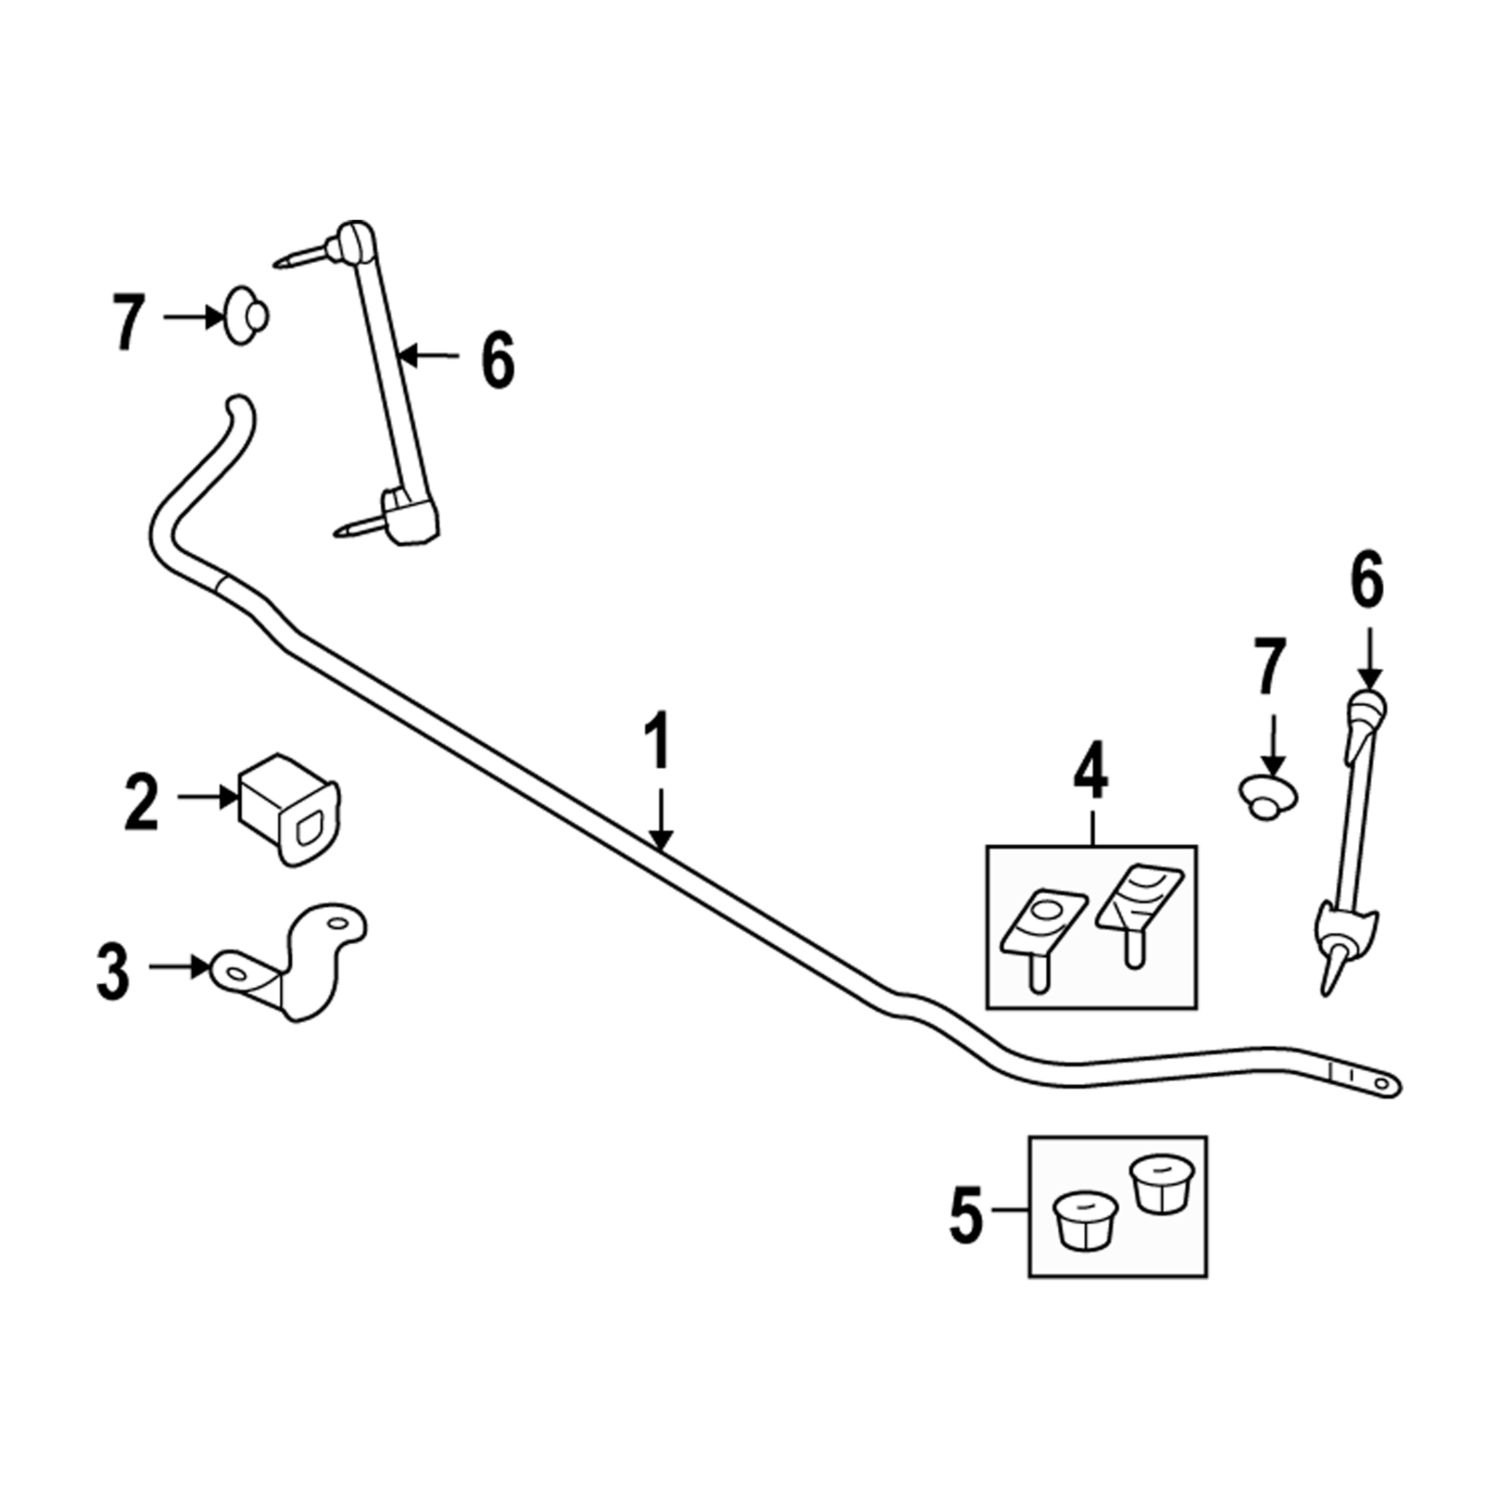 25 Ford Expedition Rear Suspension Diagram